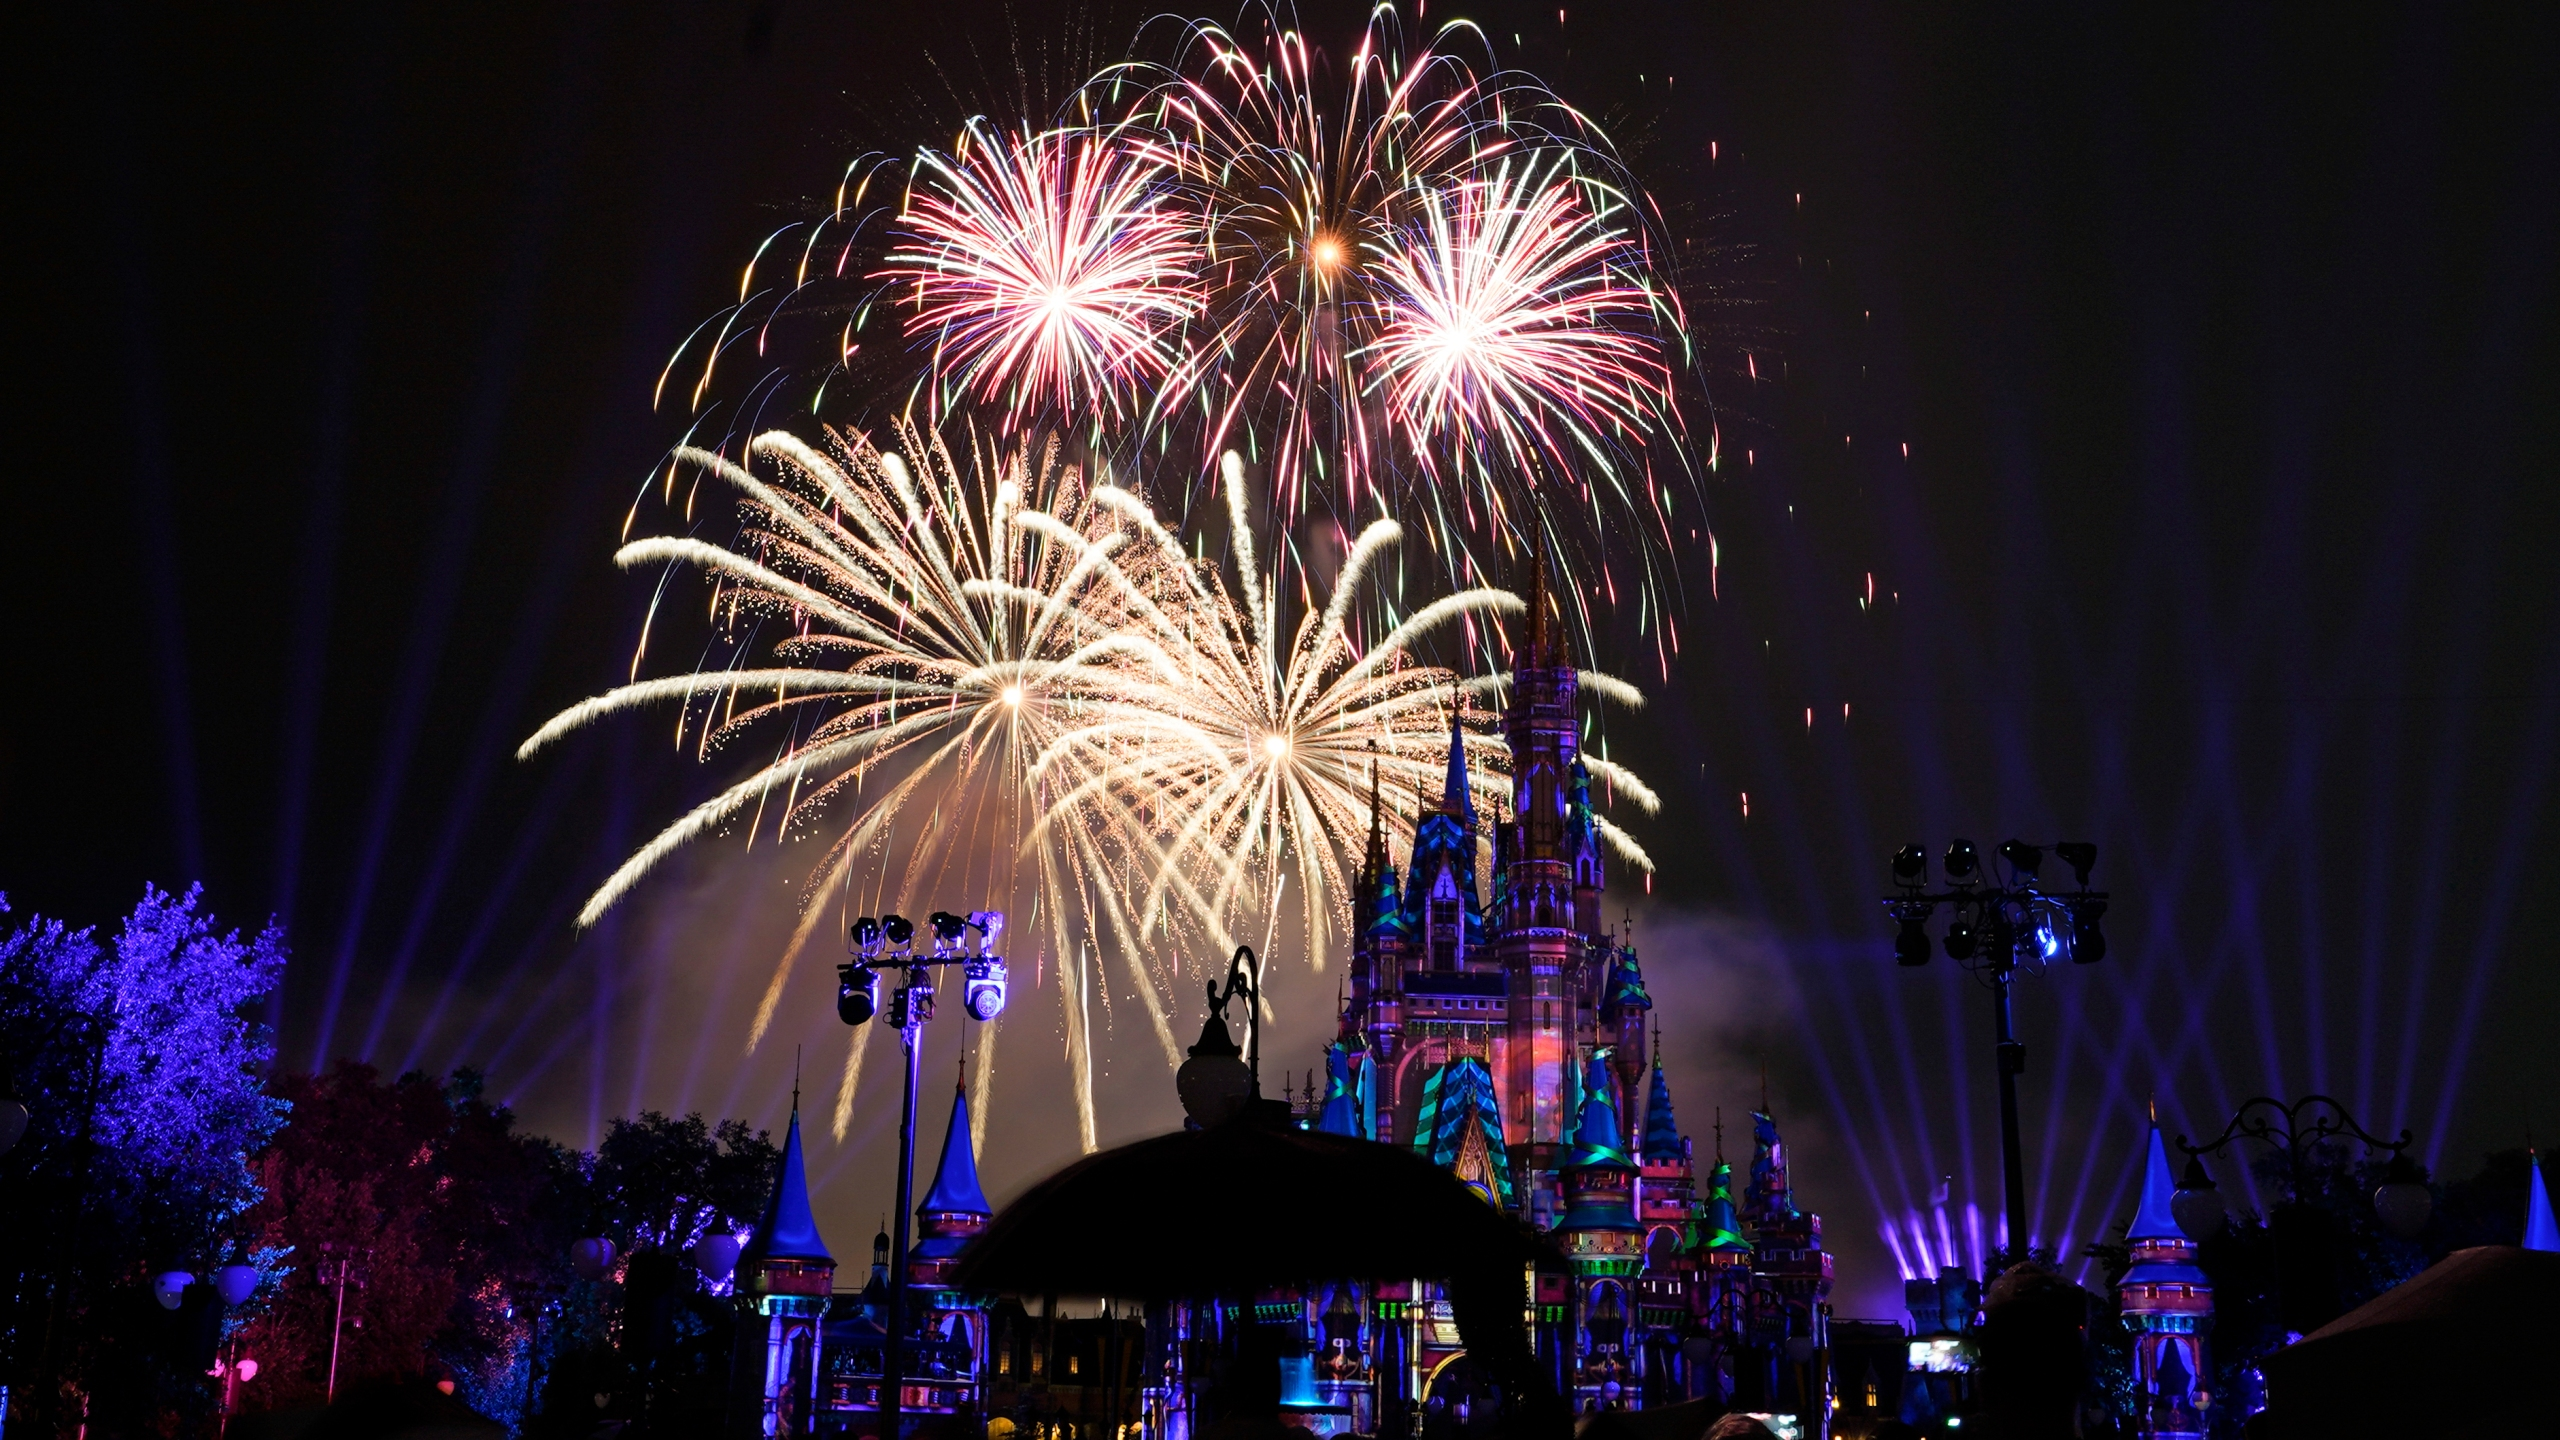 After a shutdown because of the coronavirus, fireworks fill the sky for the first time in 15 months at the Magic Kingdom at Walt Disney World in Lake Buena Vista, Fla., on July 1, 2021. (John Raoux / Associated Press)